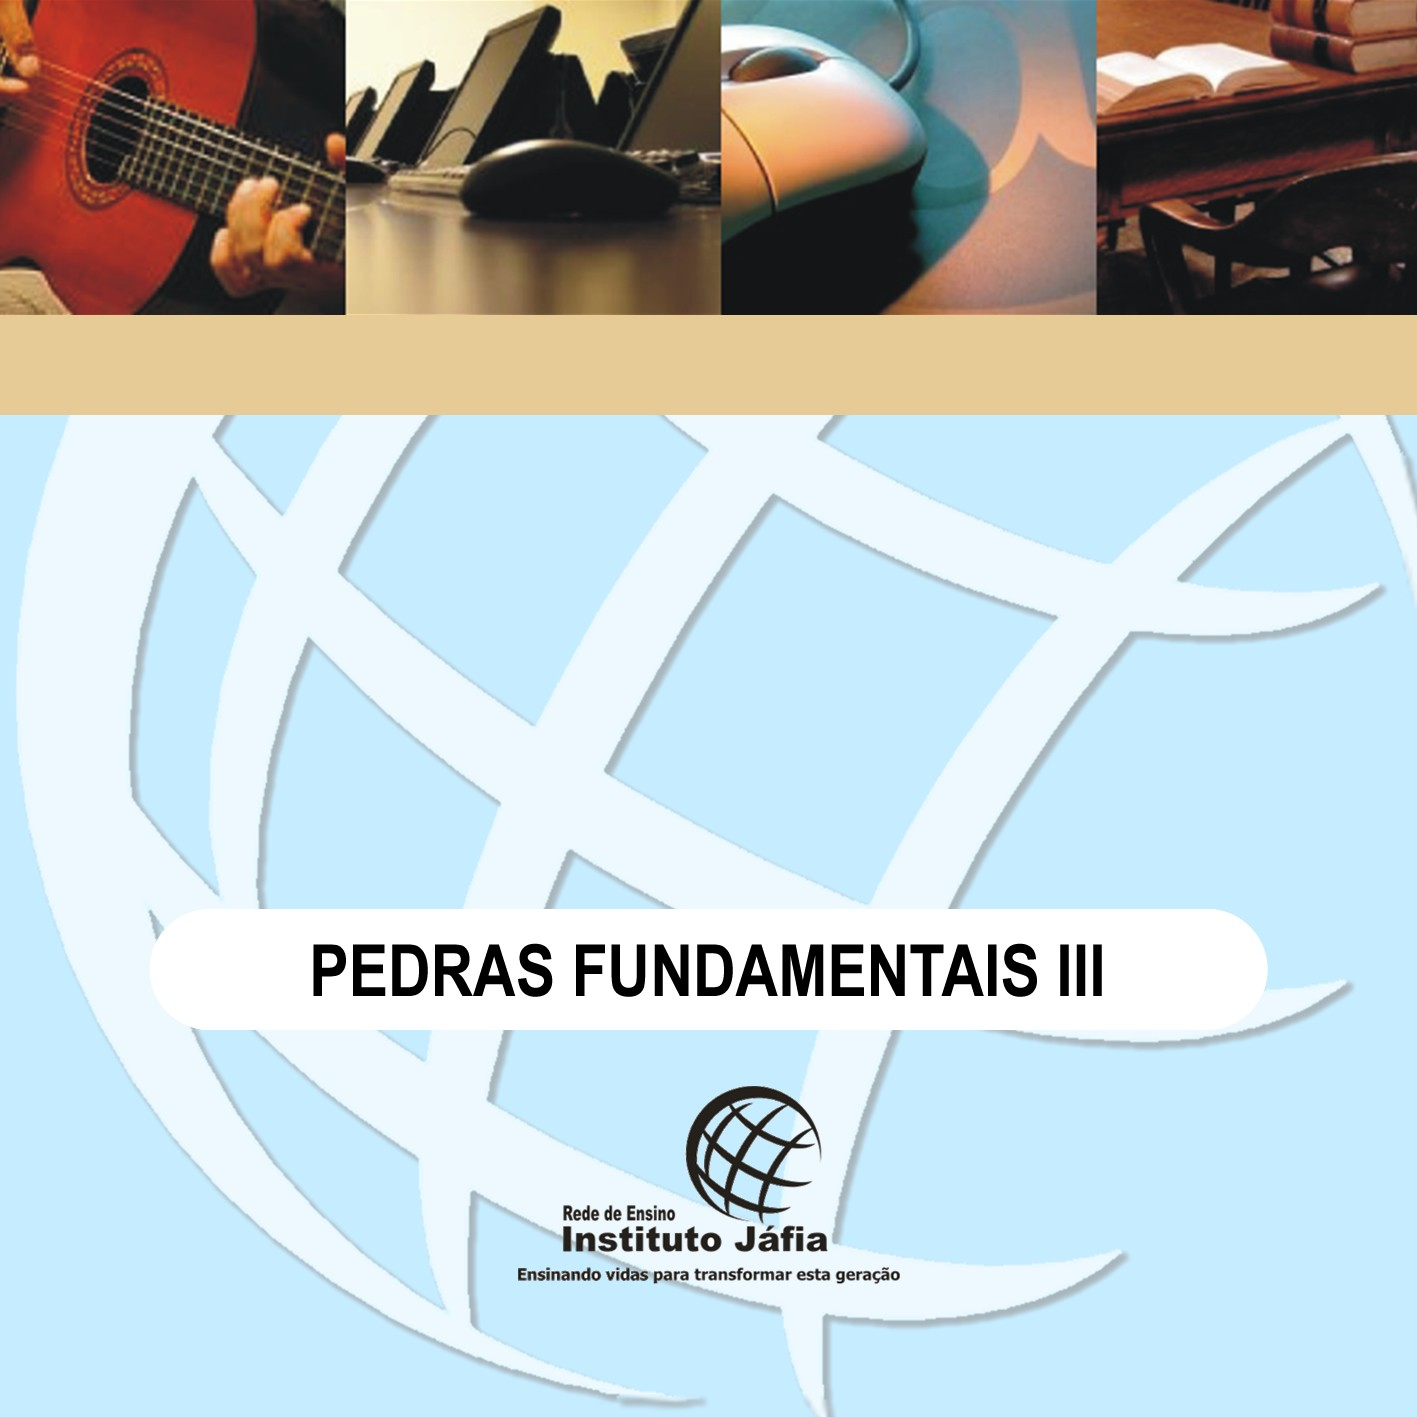 Pedras Fundamentais III